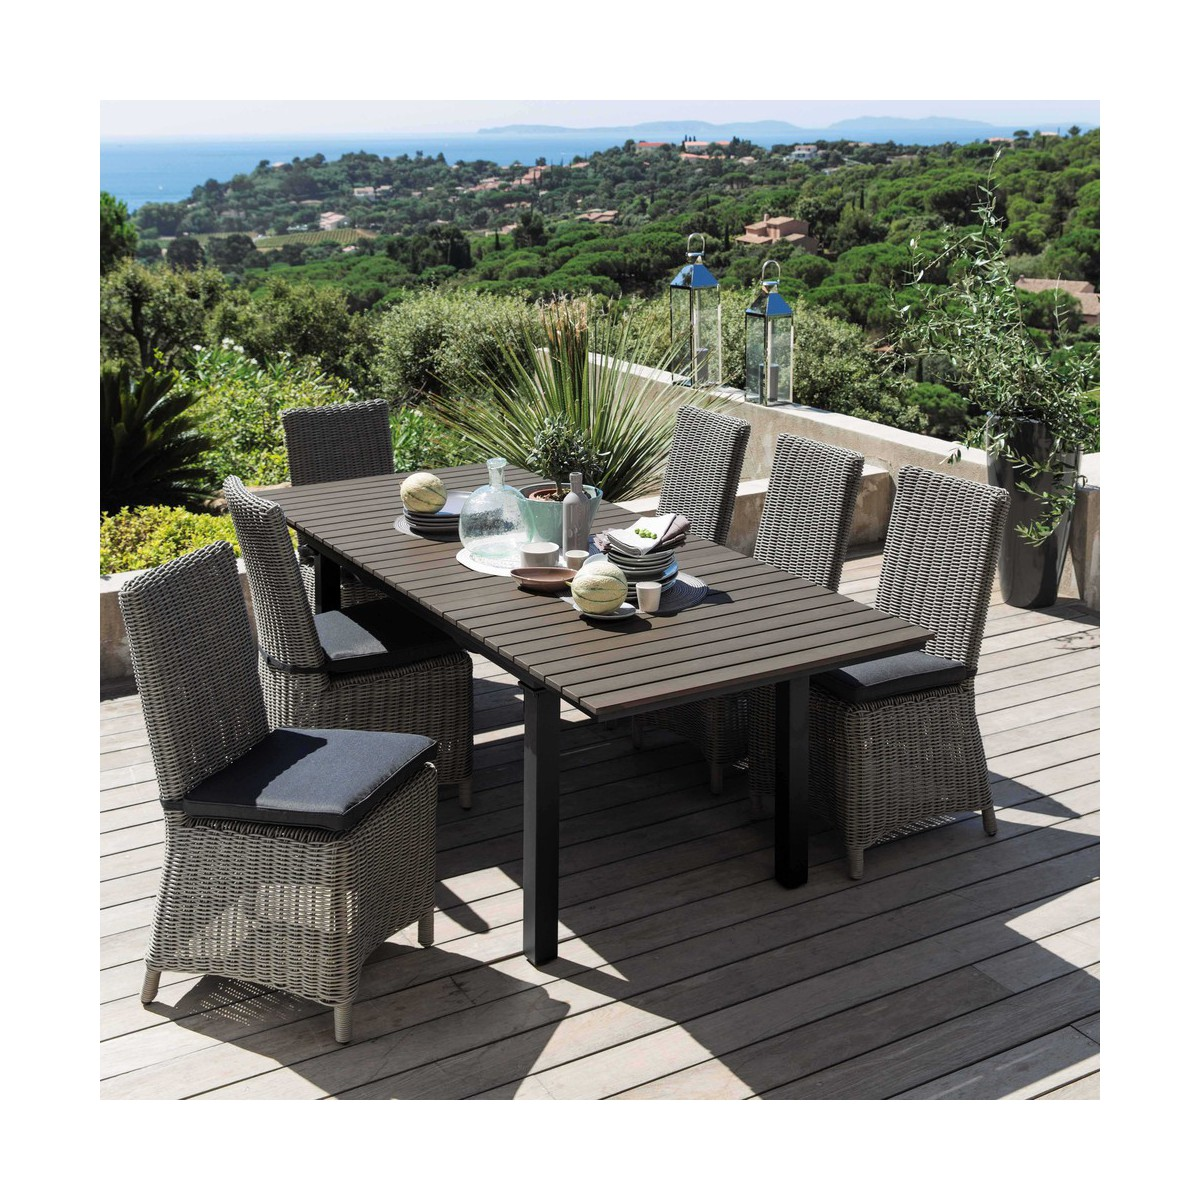 Salon De Jardin Teck Et Aluminium Table De Jardin Aluminium Et Composite Best Best Table De